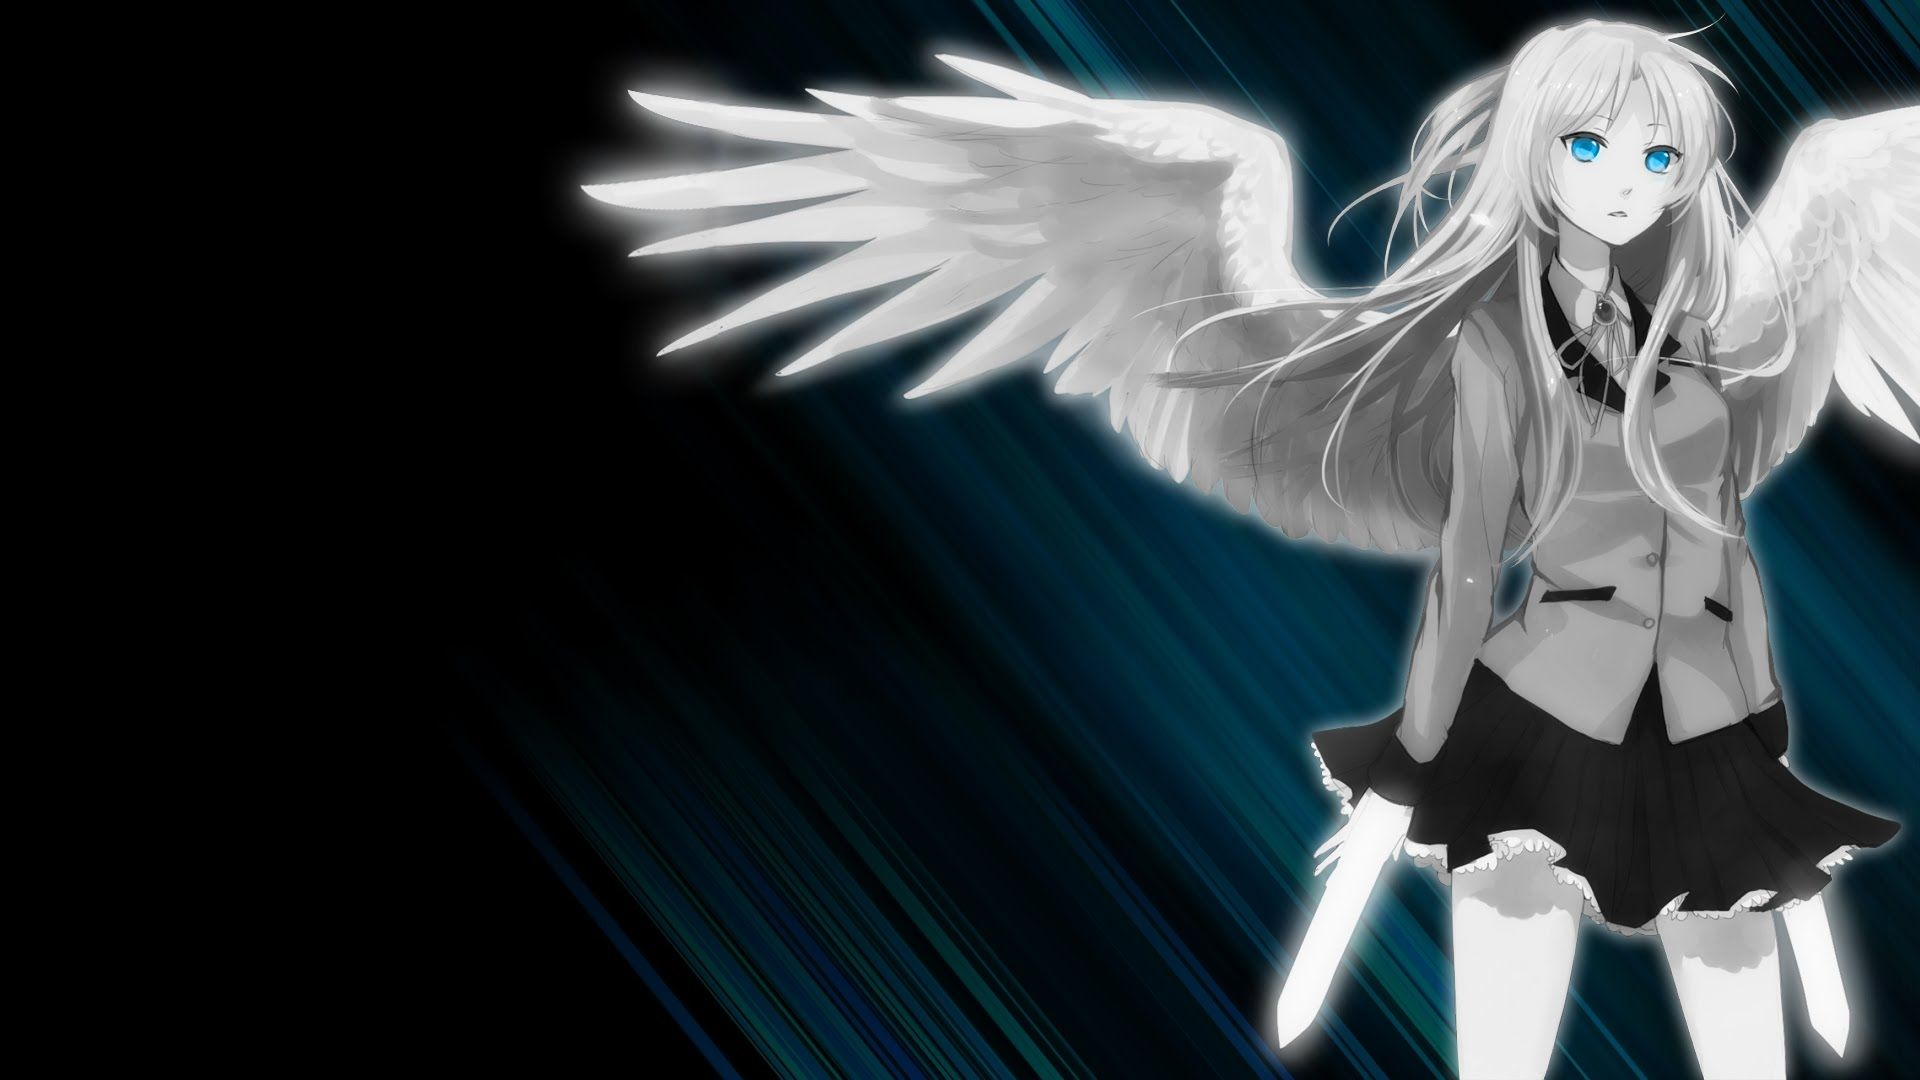 Fallen Angel Anime Girl Wallpapers Top Free Fallen Angel Anime